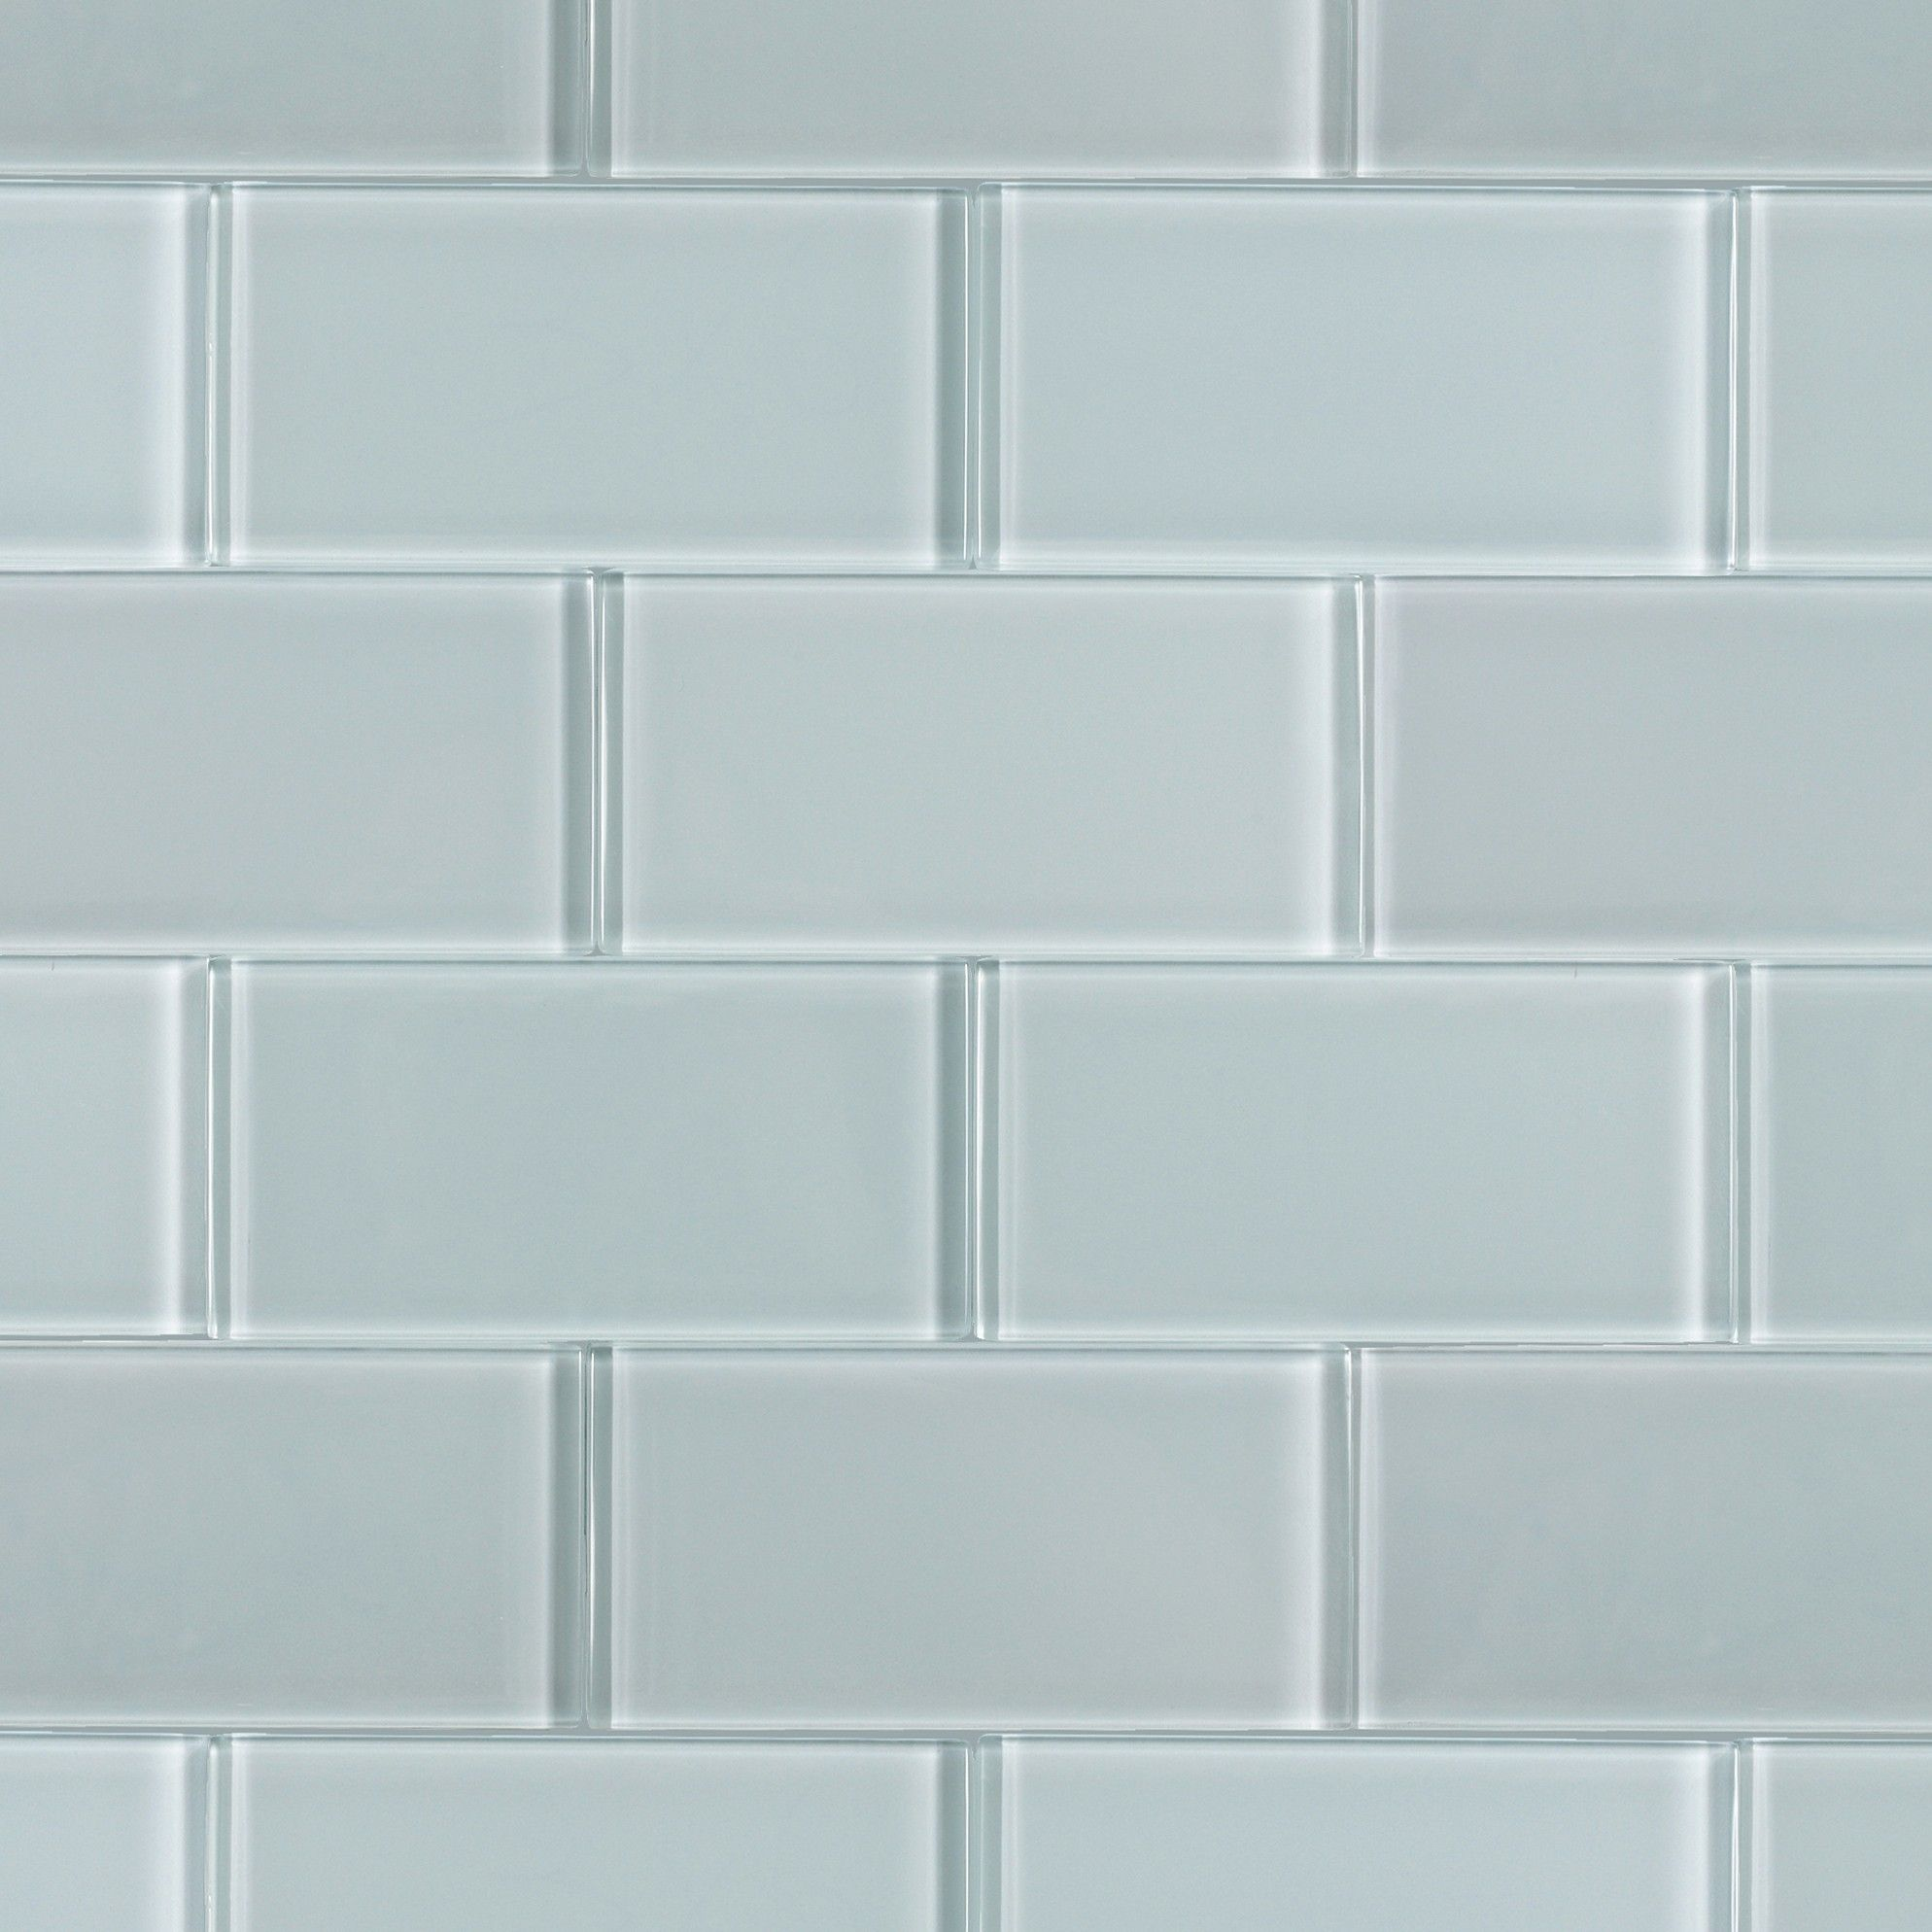 Loft Natural White 3x6 Polished Glass Tile | Kitchens, LUHHHV \'em in ...